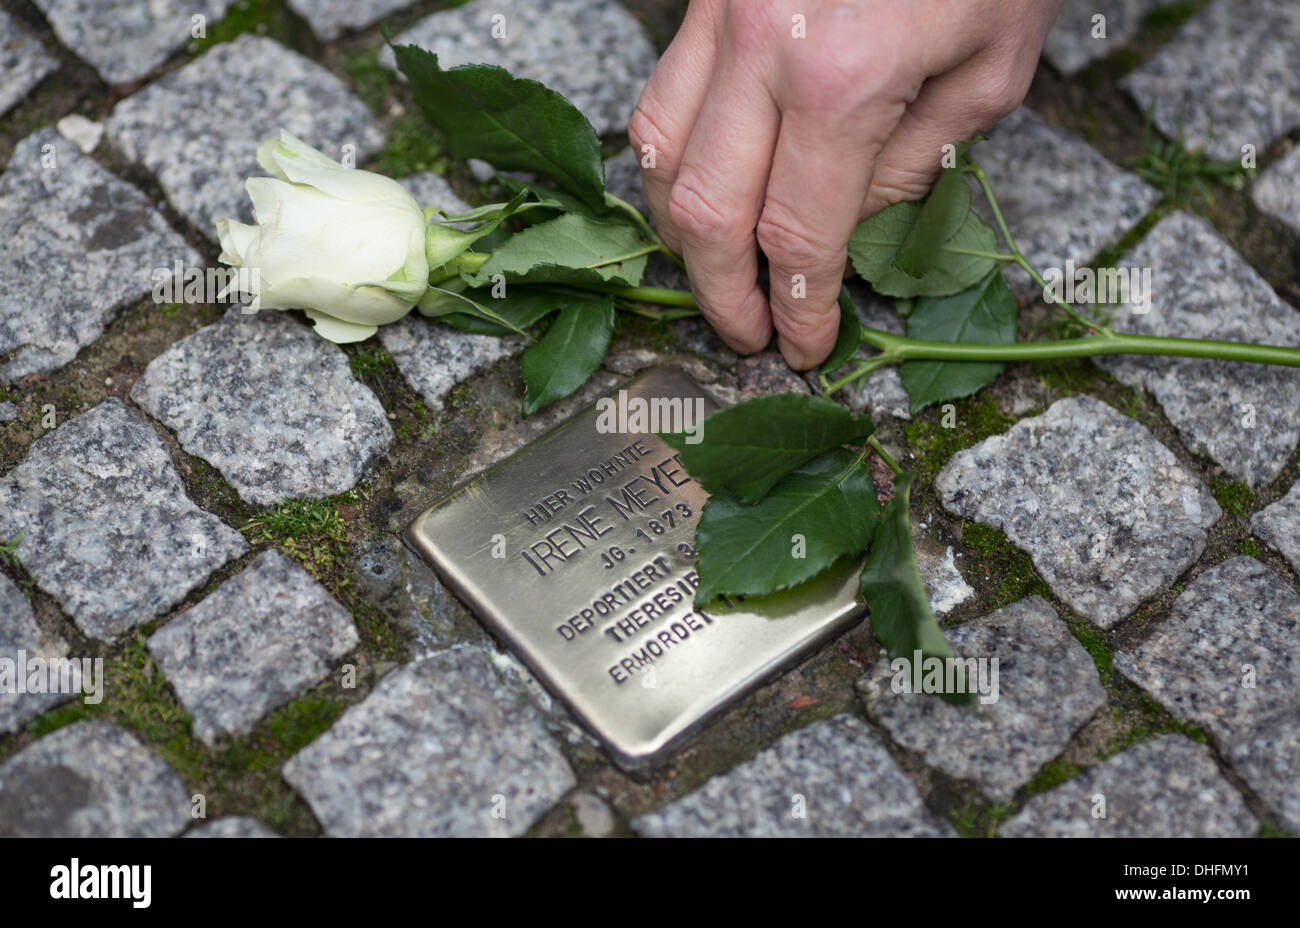 Berlin, Germany. 09th Nov, 2013. A man puts down a rose next to a tripping stone during a walkabout in reminiscence of the Jewish Nazi victims in Berlin, Germany, 09 November 2013. Photo: FLORIAN SCHUH/dpa/Alamy Live News - Stock Image